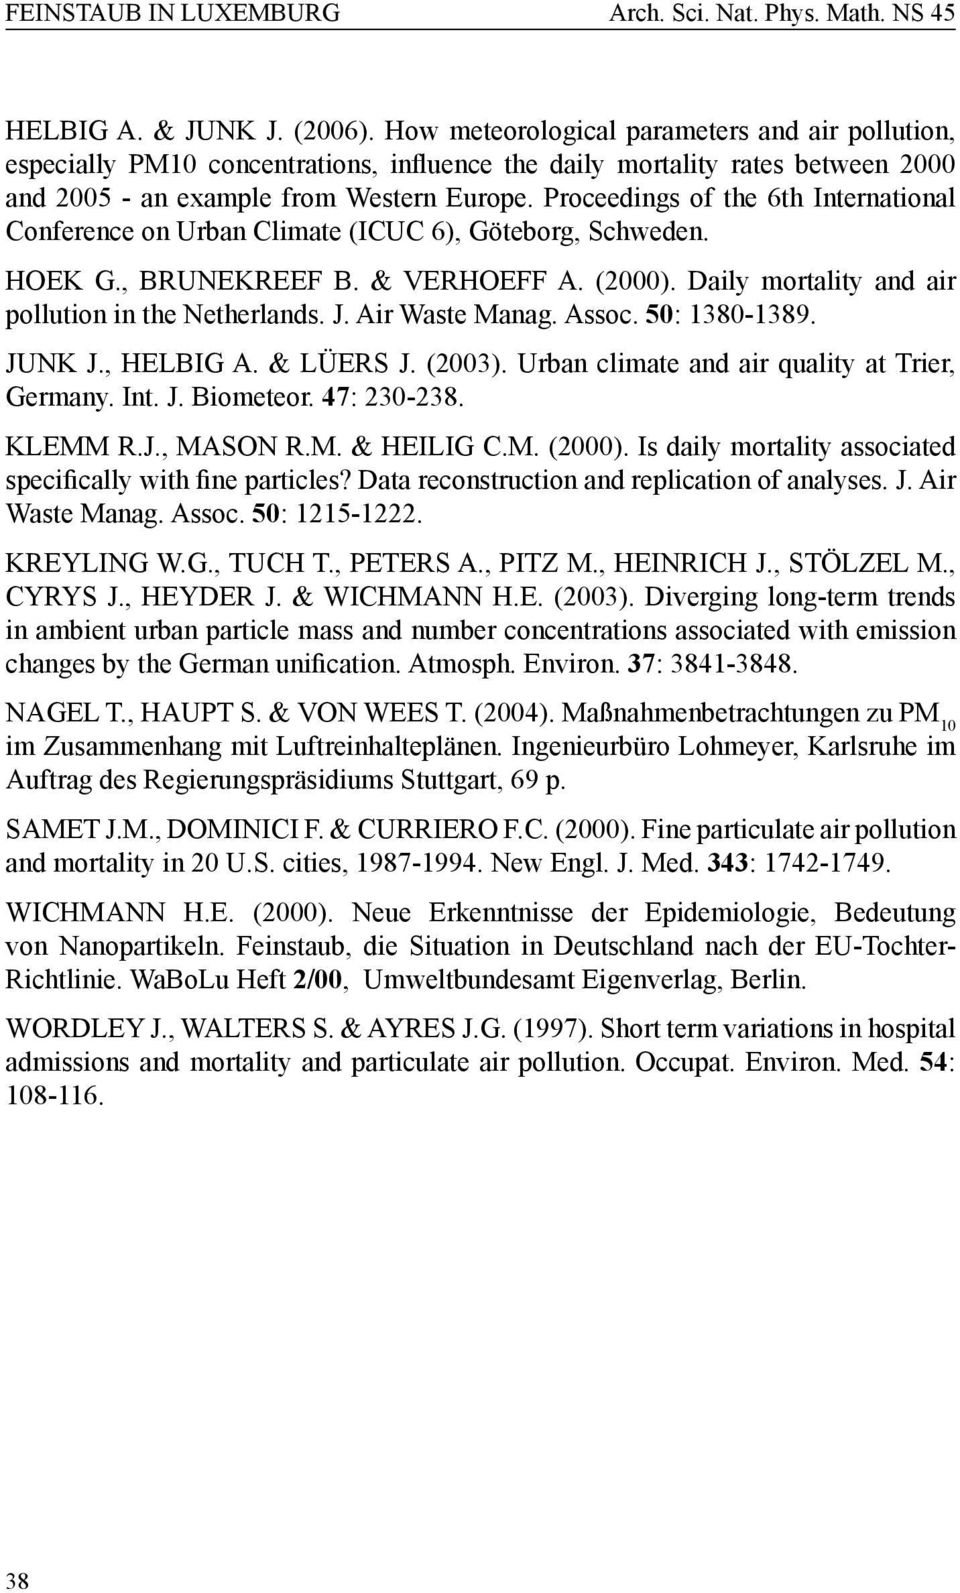 Air Waste Manag. Assoc. 50: 1380-1389. JUNK J., HELBIG A. & LÜERS J. (2003). Urban climate and air quality at Trier, Germany. Int. J. Biometeor. 47: 230-238. KLEMM R.J., MASON R.M. & HEILIG C.M. (2000).